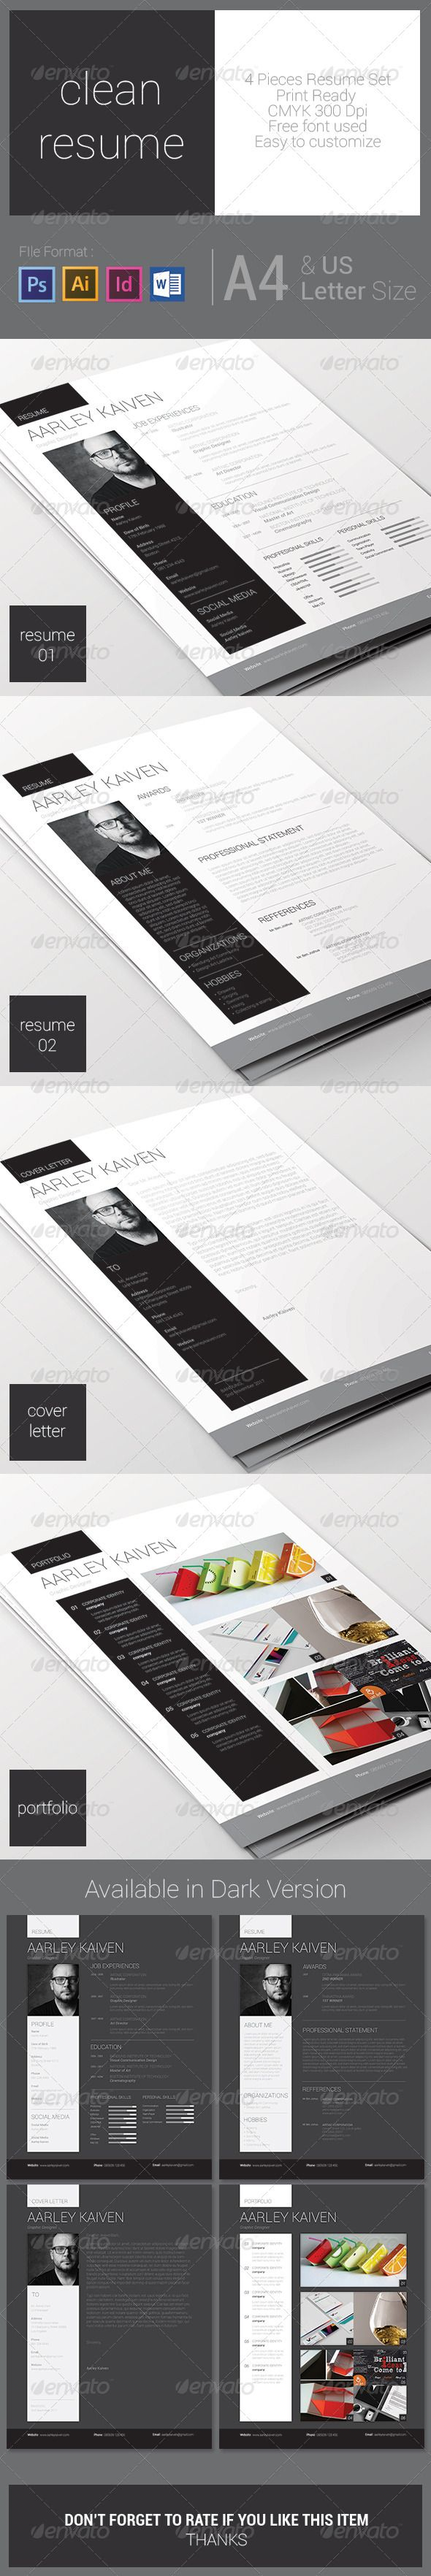 Clean Resume Set - Resumes Stationery minus the photo